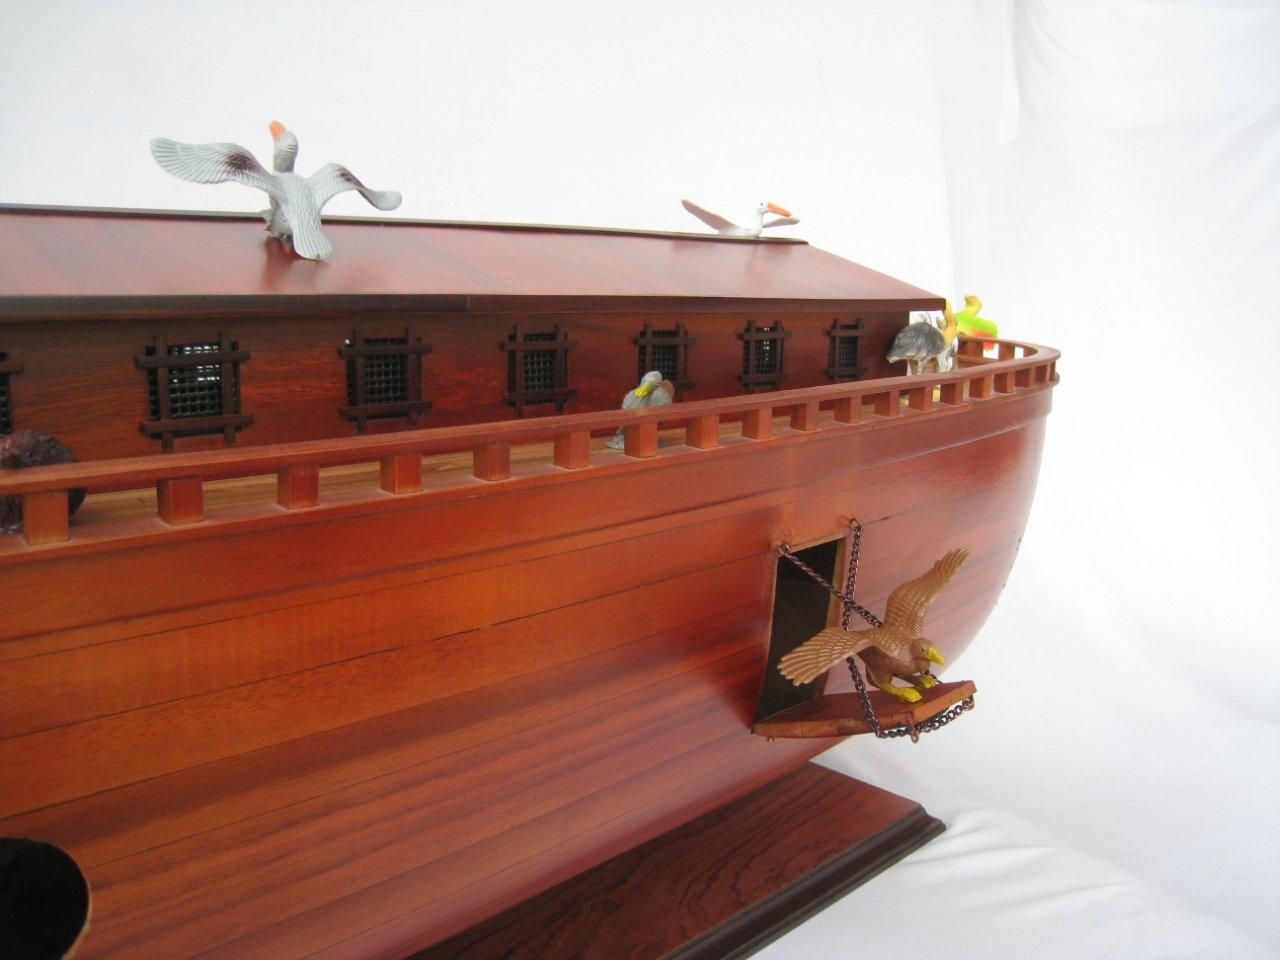 2043-12572-Noahs-Ark-Model-Boat